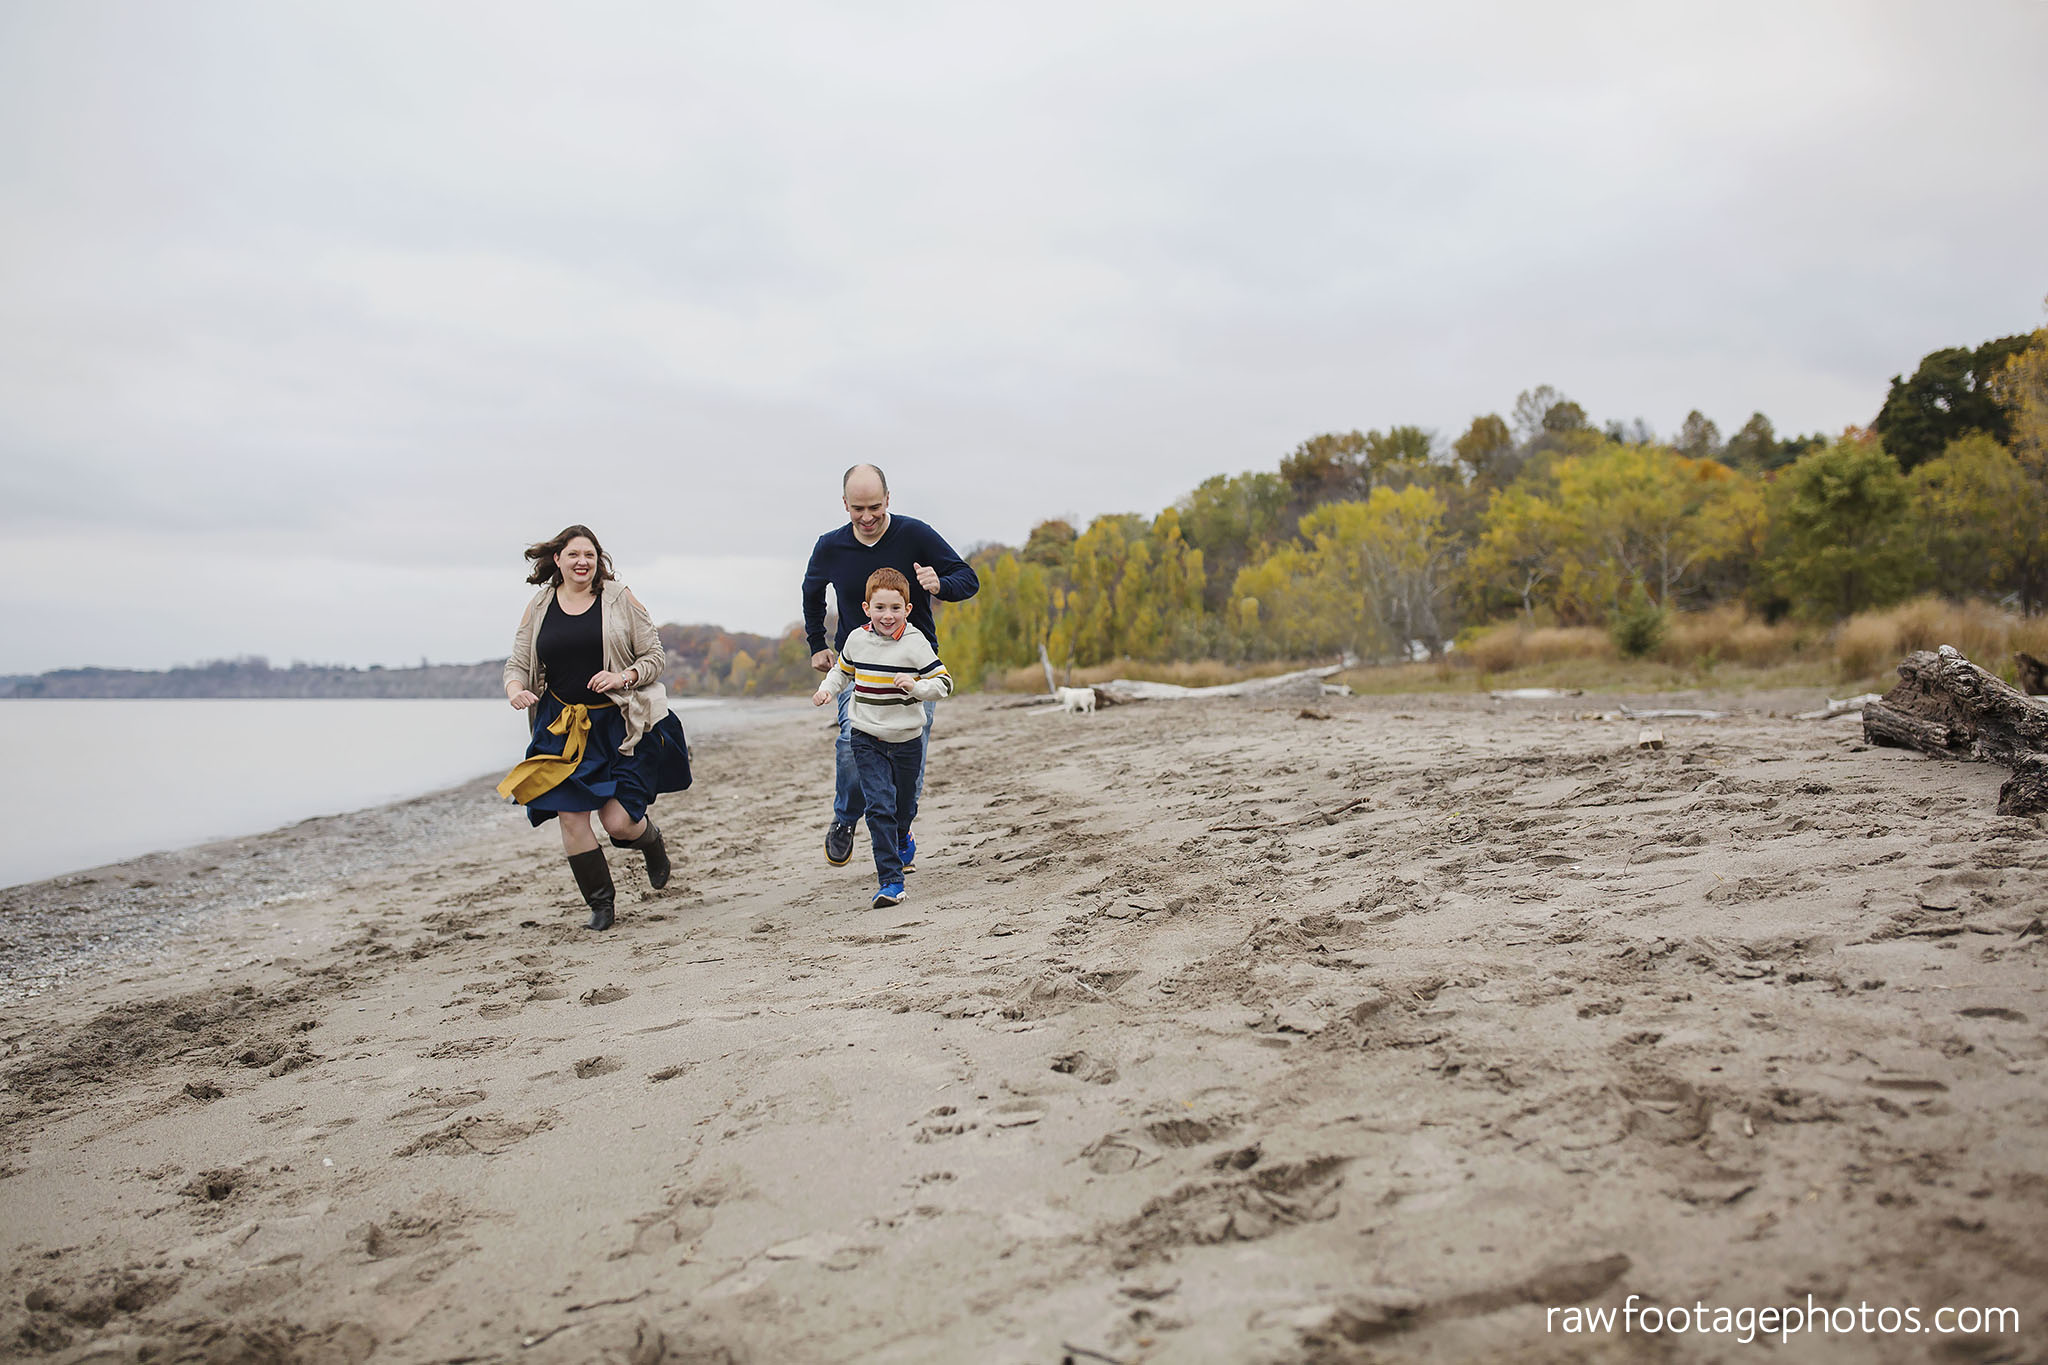 london_ontario_family_photographer-port_stanley_photography-raw_footage_photography-family_photos-beach_photos-fall_family_photos-lifestyle_family_photography-candid_photographer029.jpg